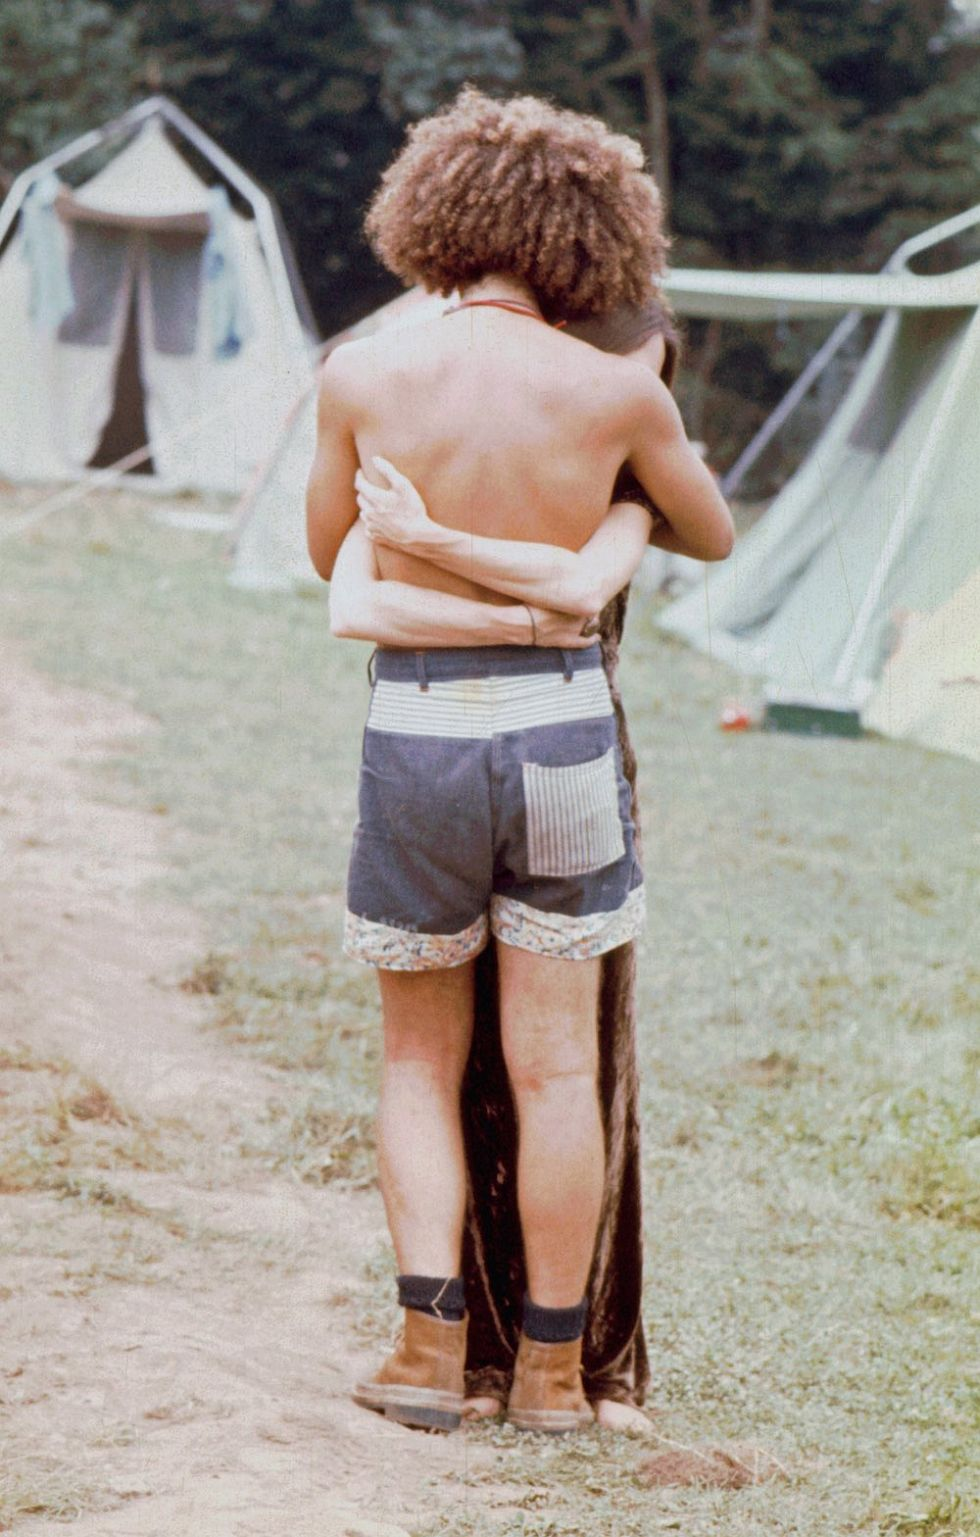 One of the dancers hugs someone on the dirt road as they stand near the tents.